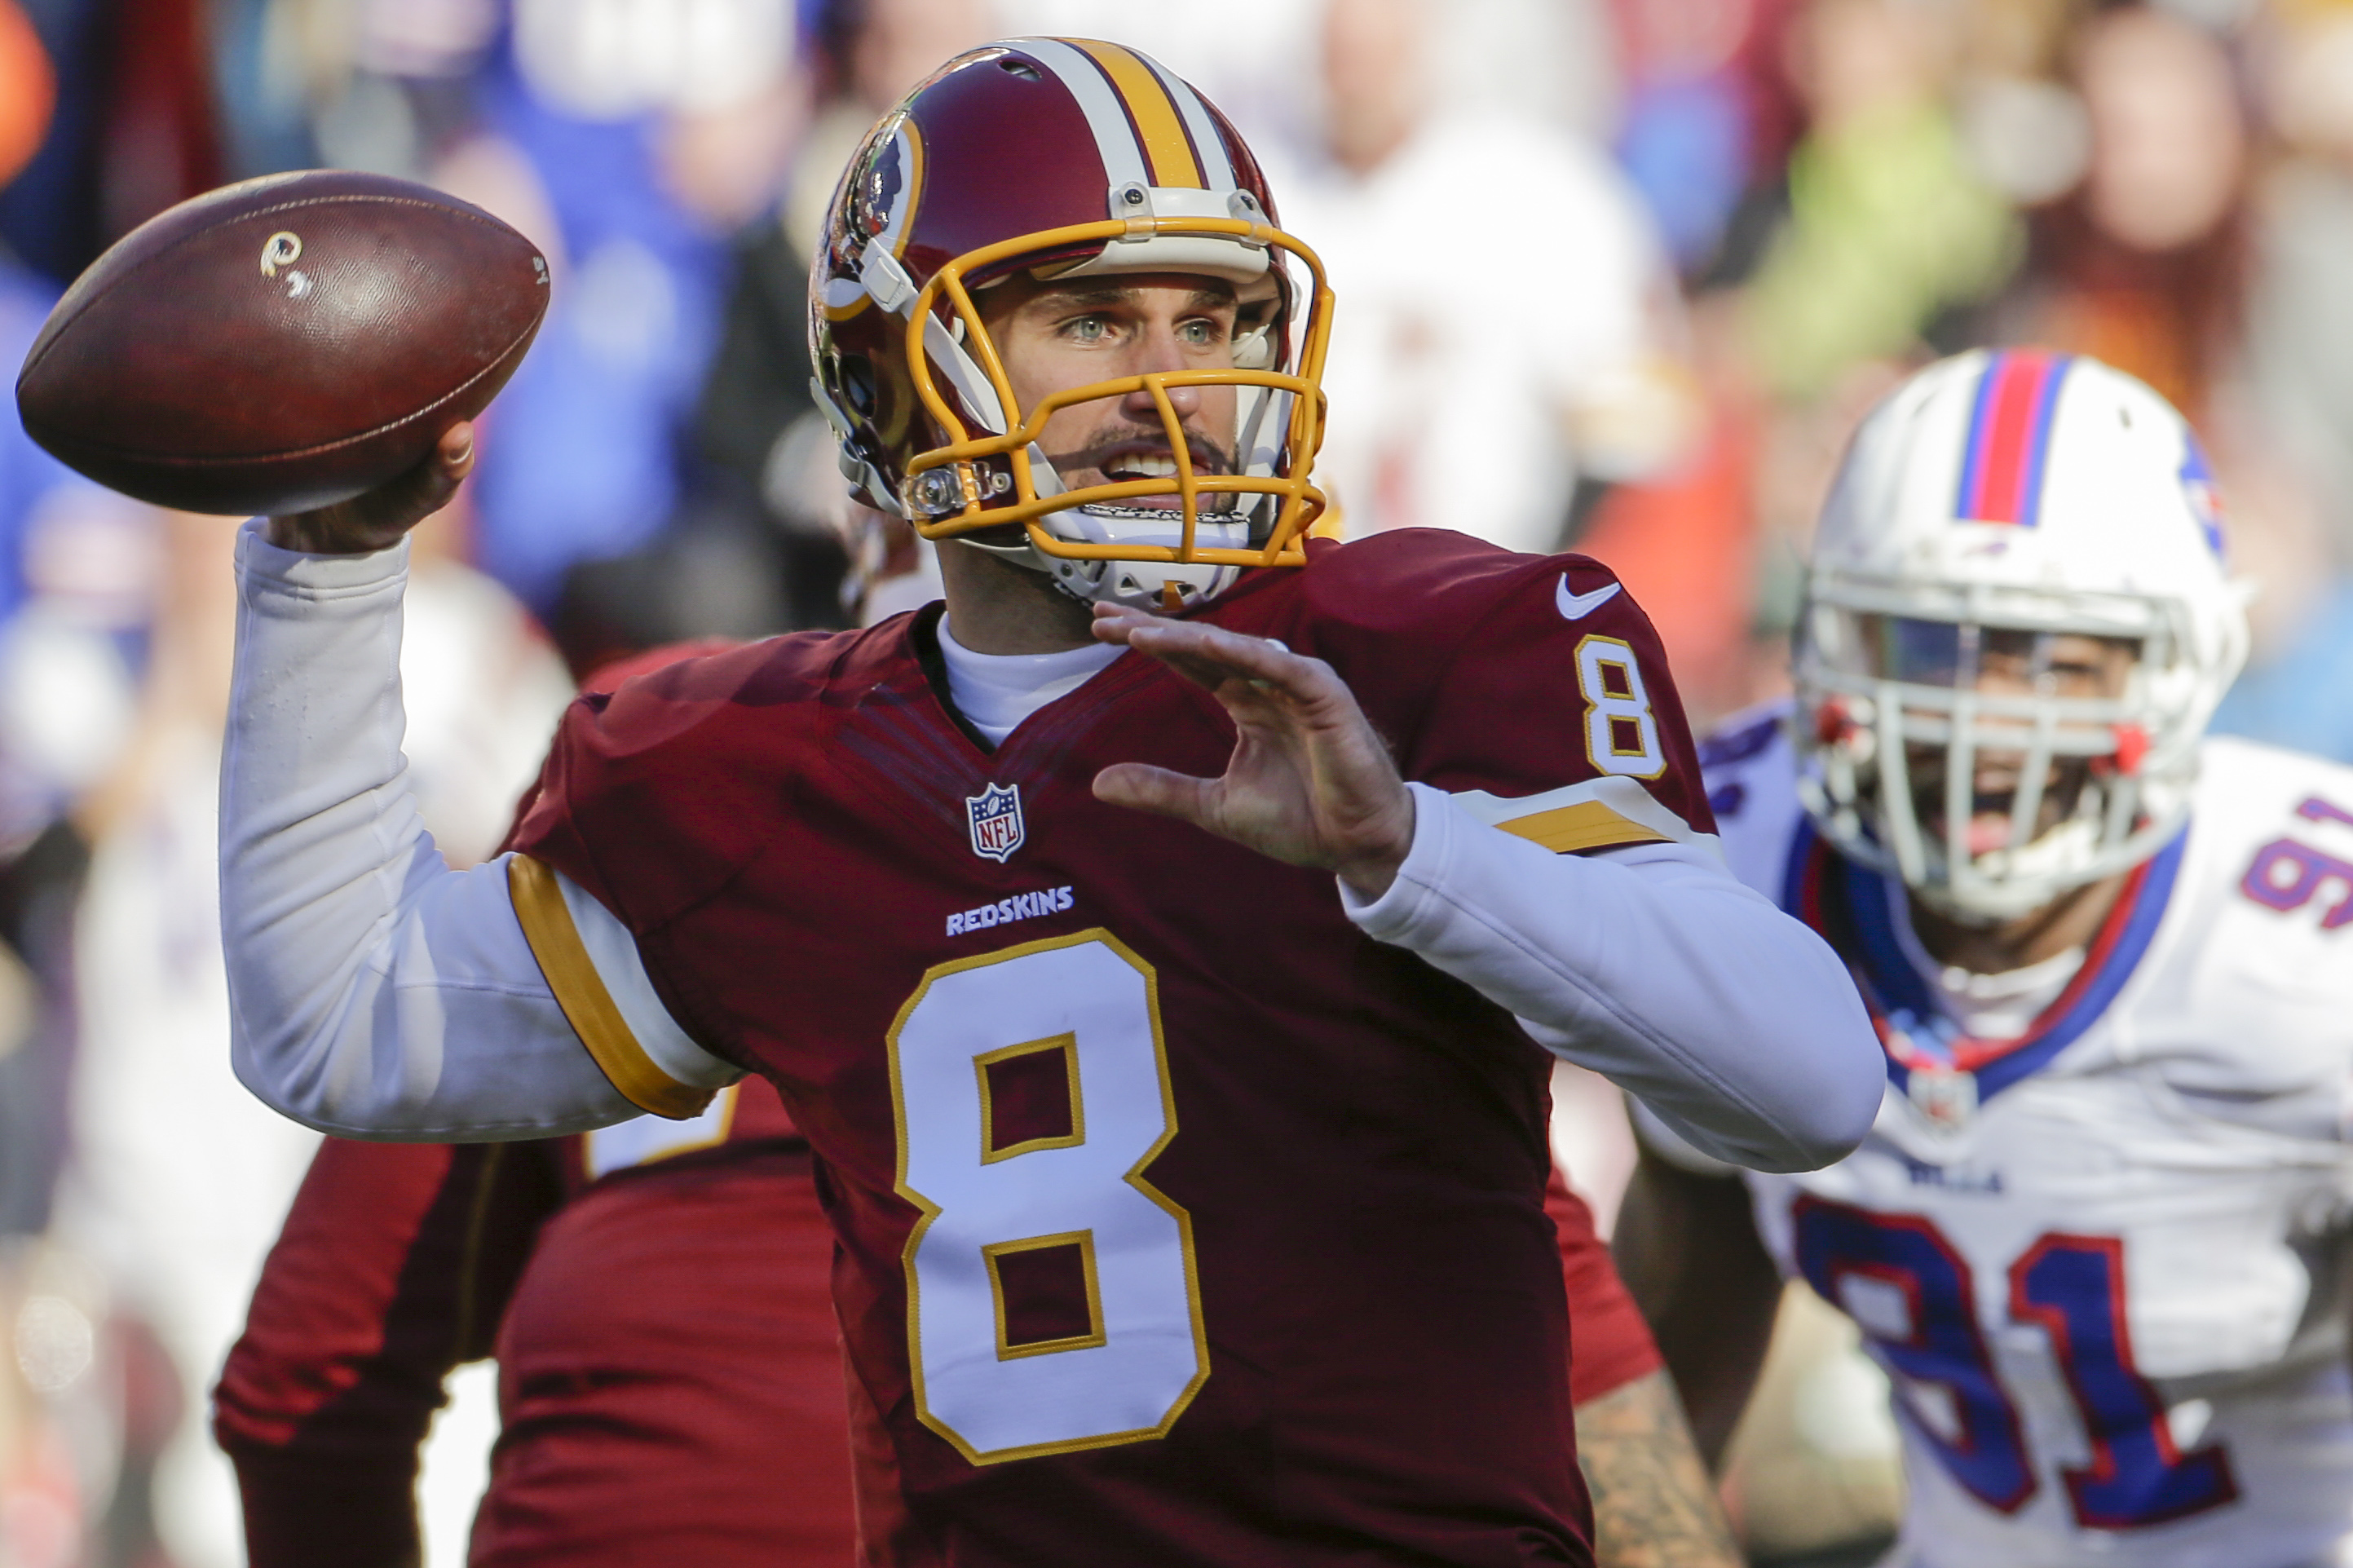 Washington Redskins quarterback Kirk Cousins (8) passes the ball during the first half of an NFL football game against the Buffalo Bills in Landover, Md., Sunday, Dec. 20, 2015. (AP Photo/Mark Tenally)